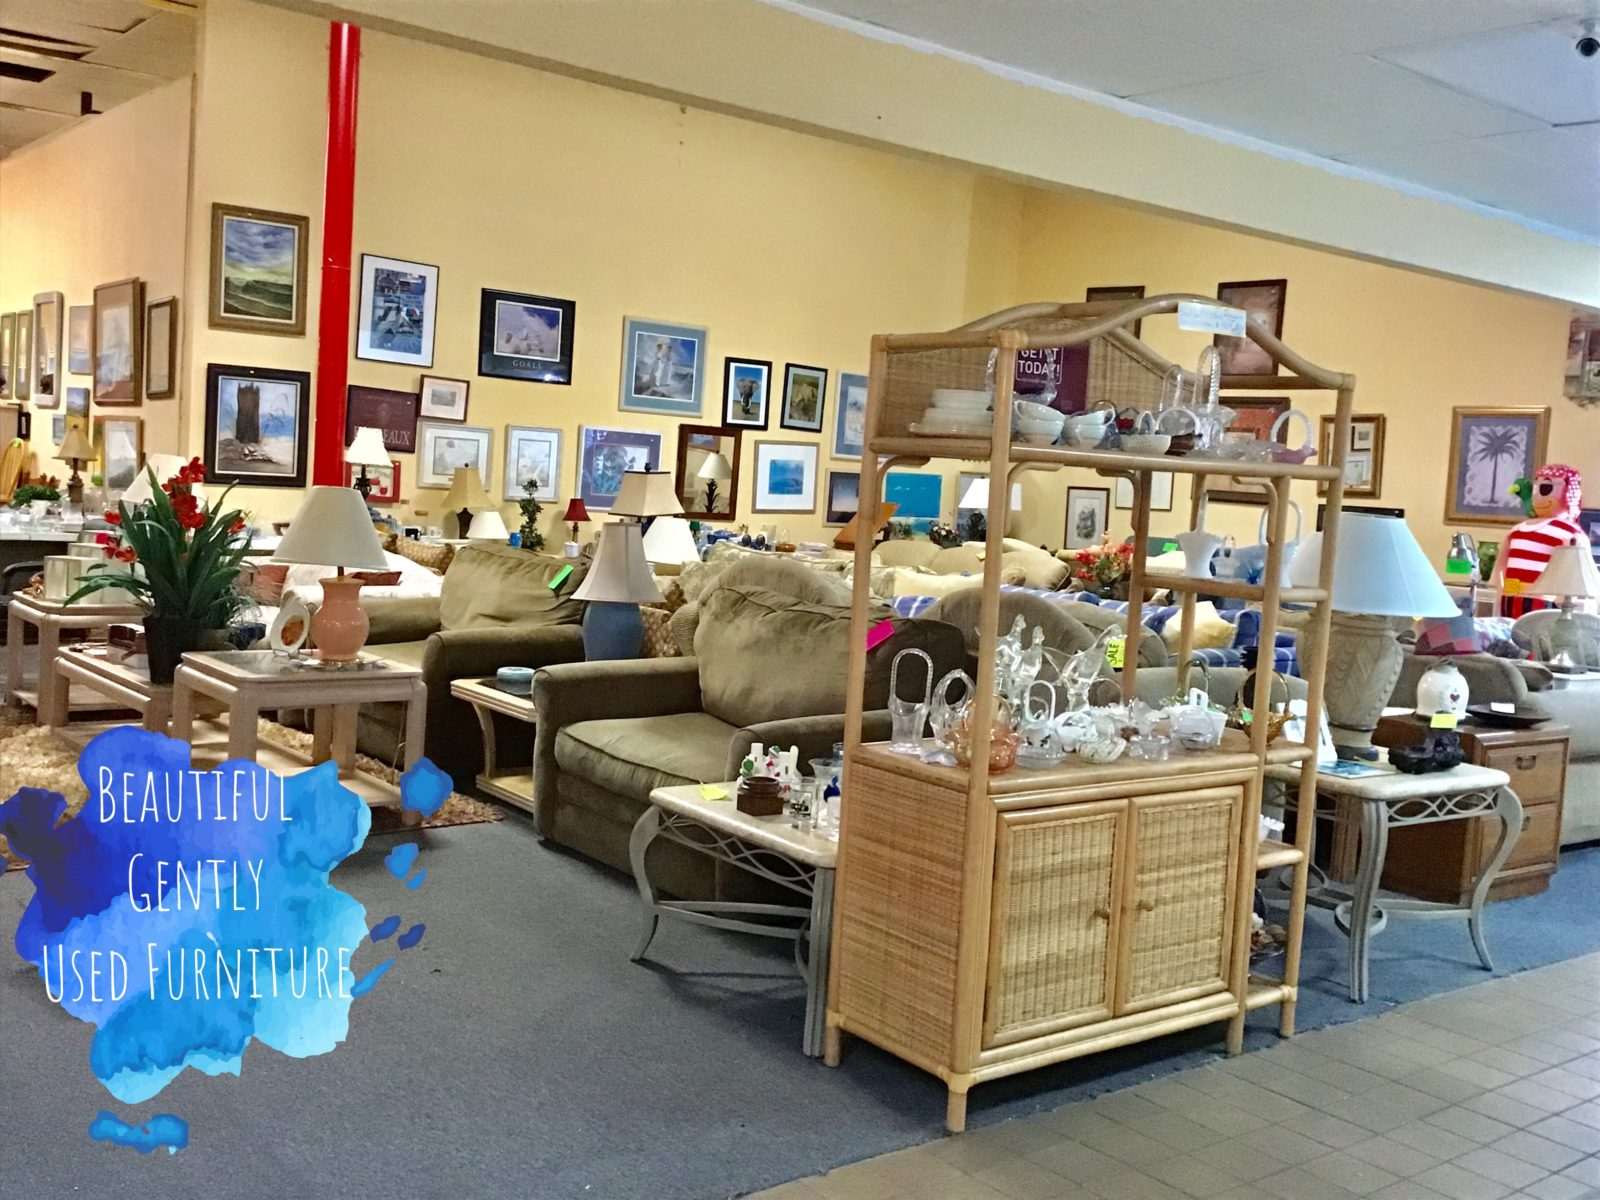 Gently Used Furniture & More • Come in and see us we have lots of gently used furniture Before you buy  give Diamond Jim a try We have lots of beautiful items to choose from whether you were looking for a couch or even awake or daybed we have it all come in and see us today